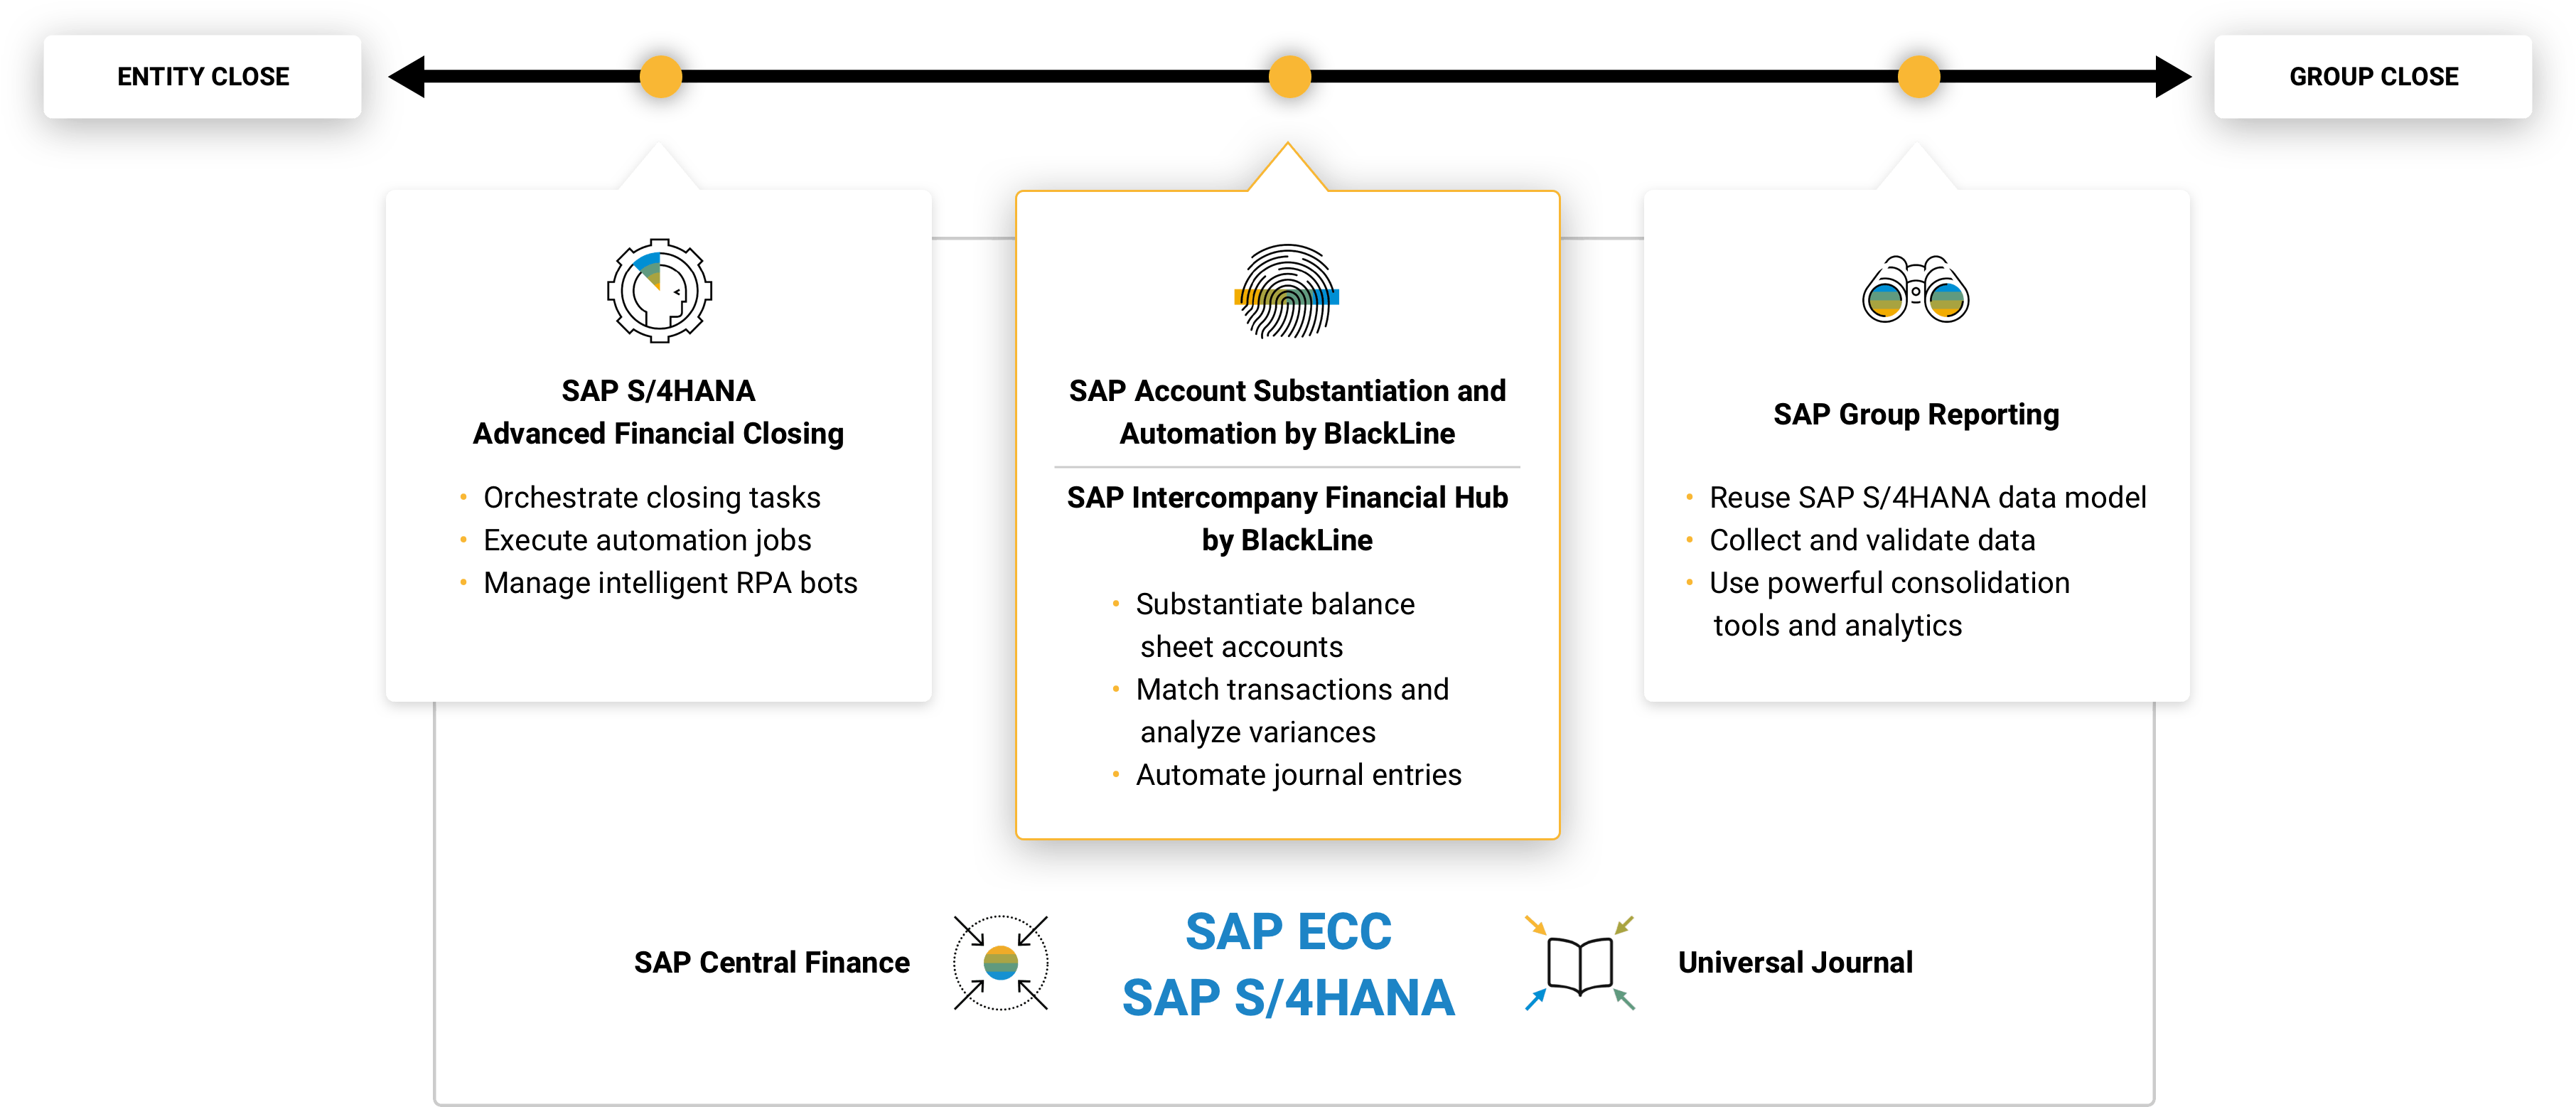 BlackLine SAP S/4HANA Advanced Financial Closing Image